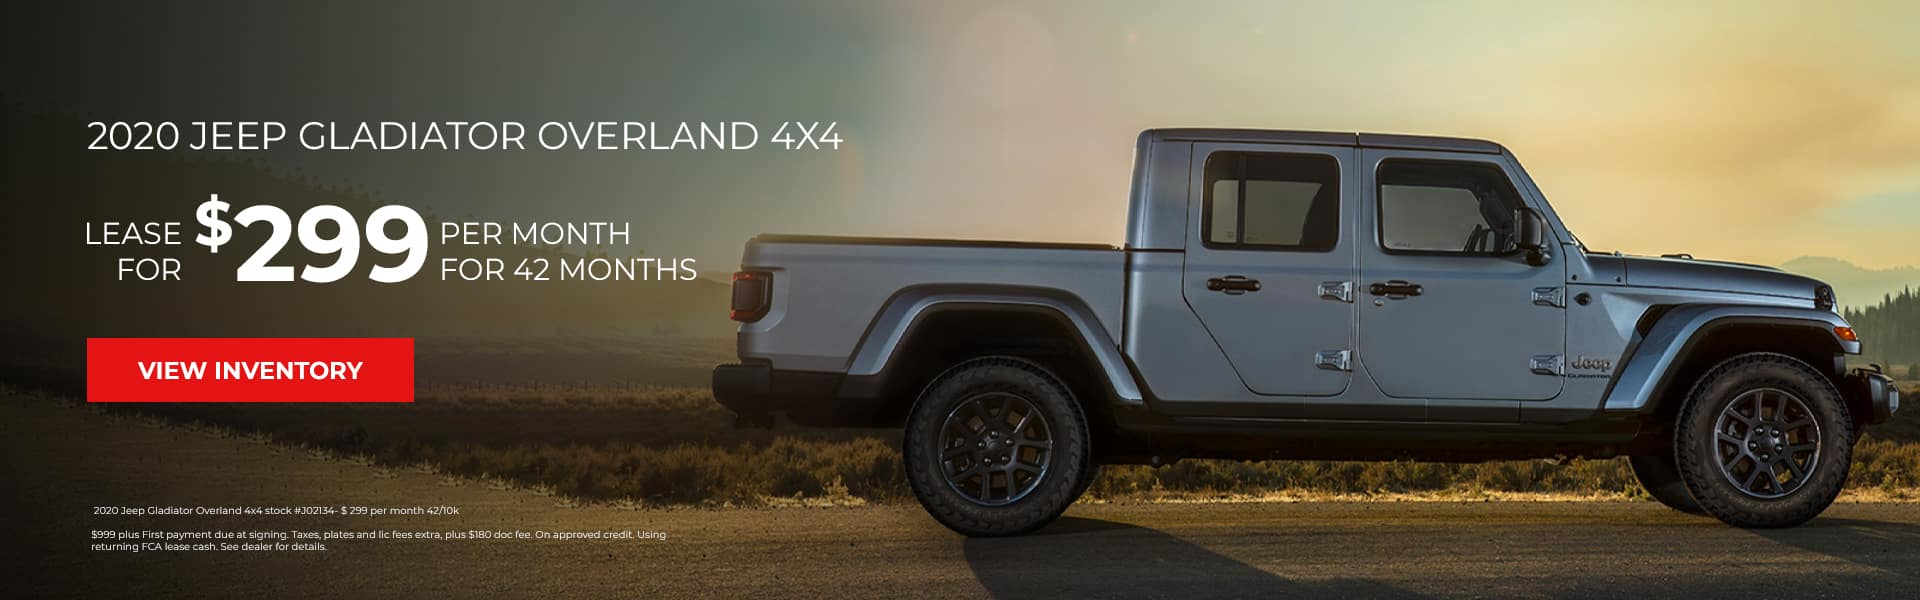 April Lease Special Jeep Gladiator